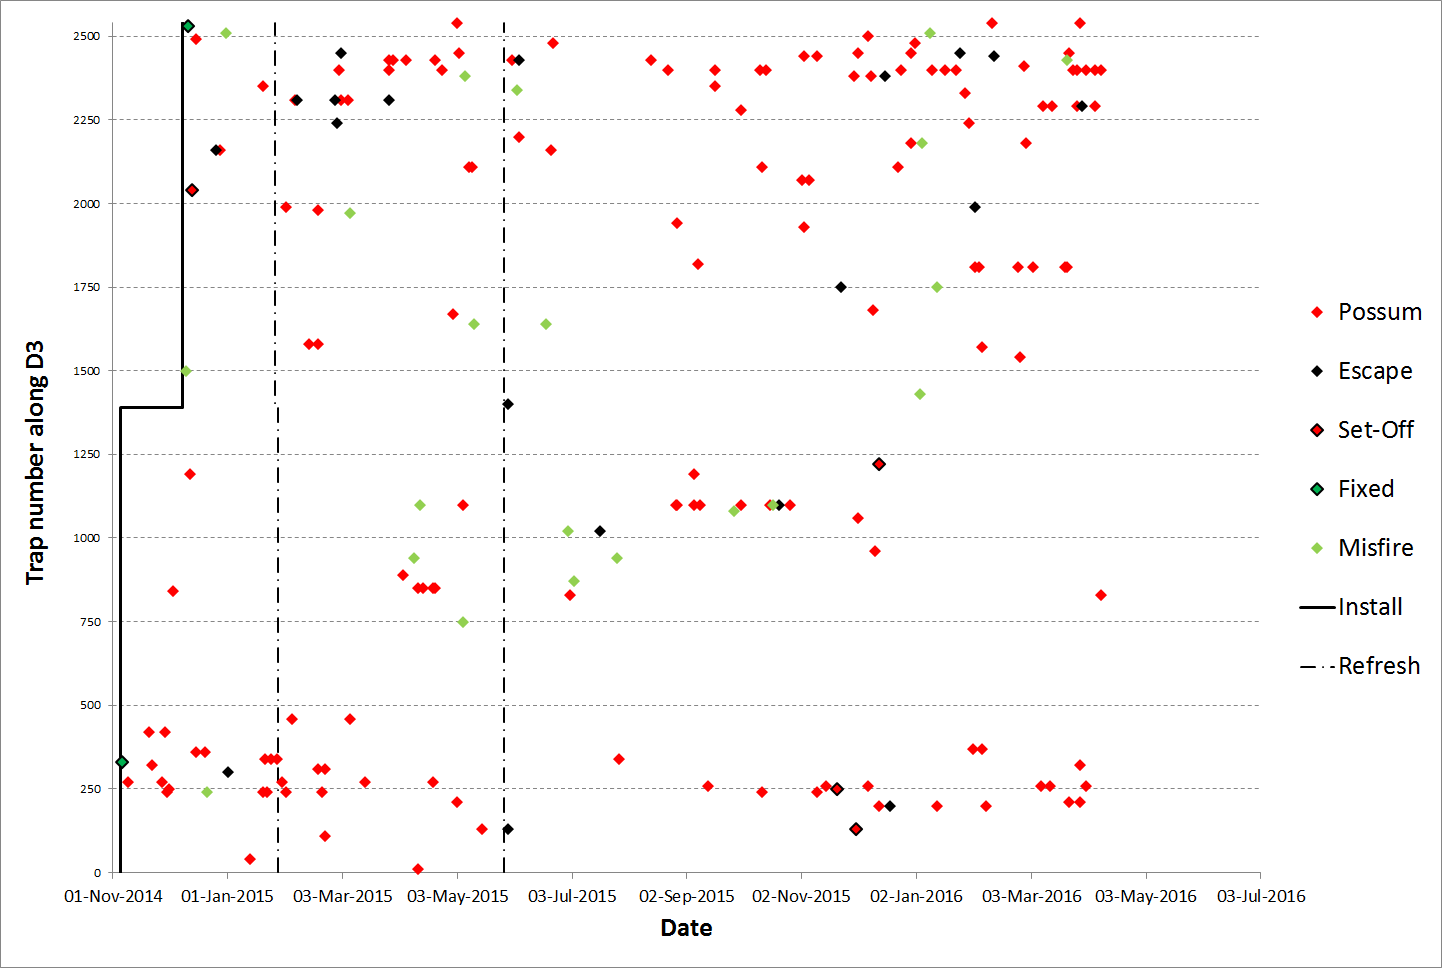 Defence Line 3 (D3) leghold trap triggers over time. The left-hand axis represents the trap number and distance in metres along the line.  The vertical dot/dash line represents the date on which the food lure was refreshed. Note that possum interaction and catch rates appear insensitive to the freshness of the foodlure (i.e. capture rates do not increase immediately after refreshing the lure).